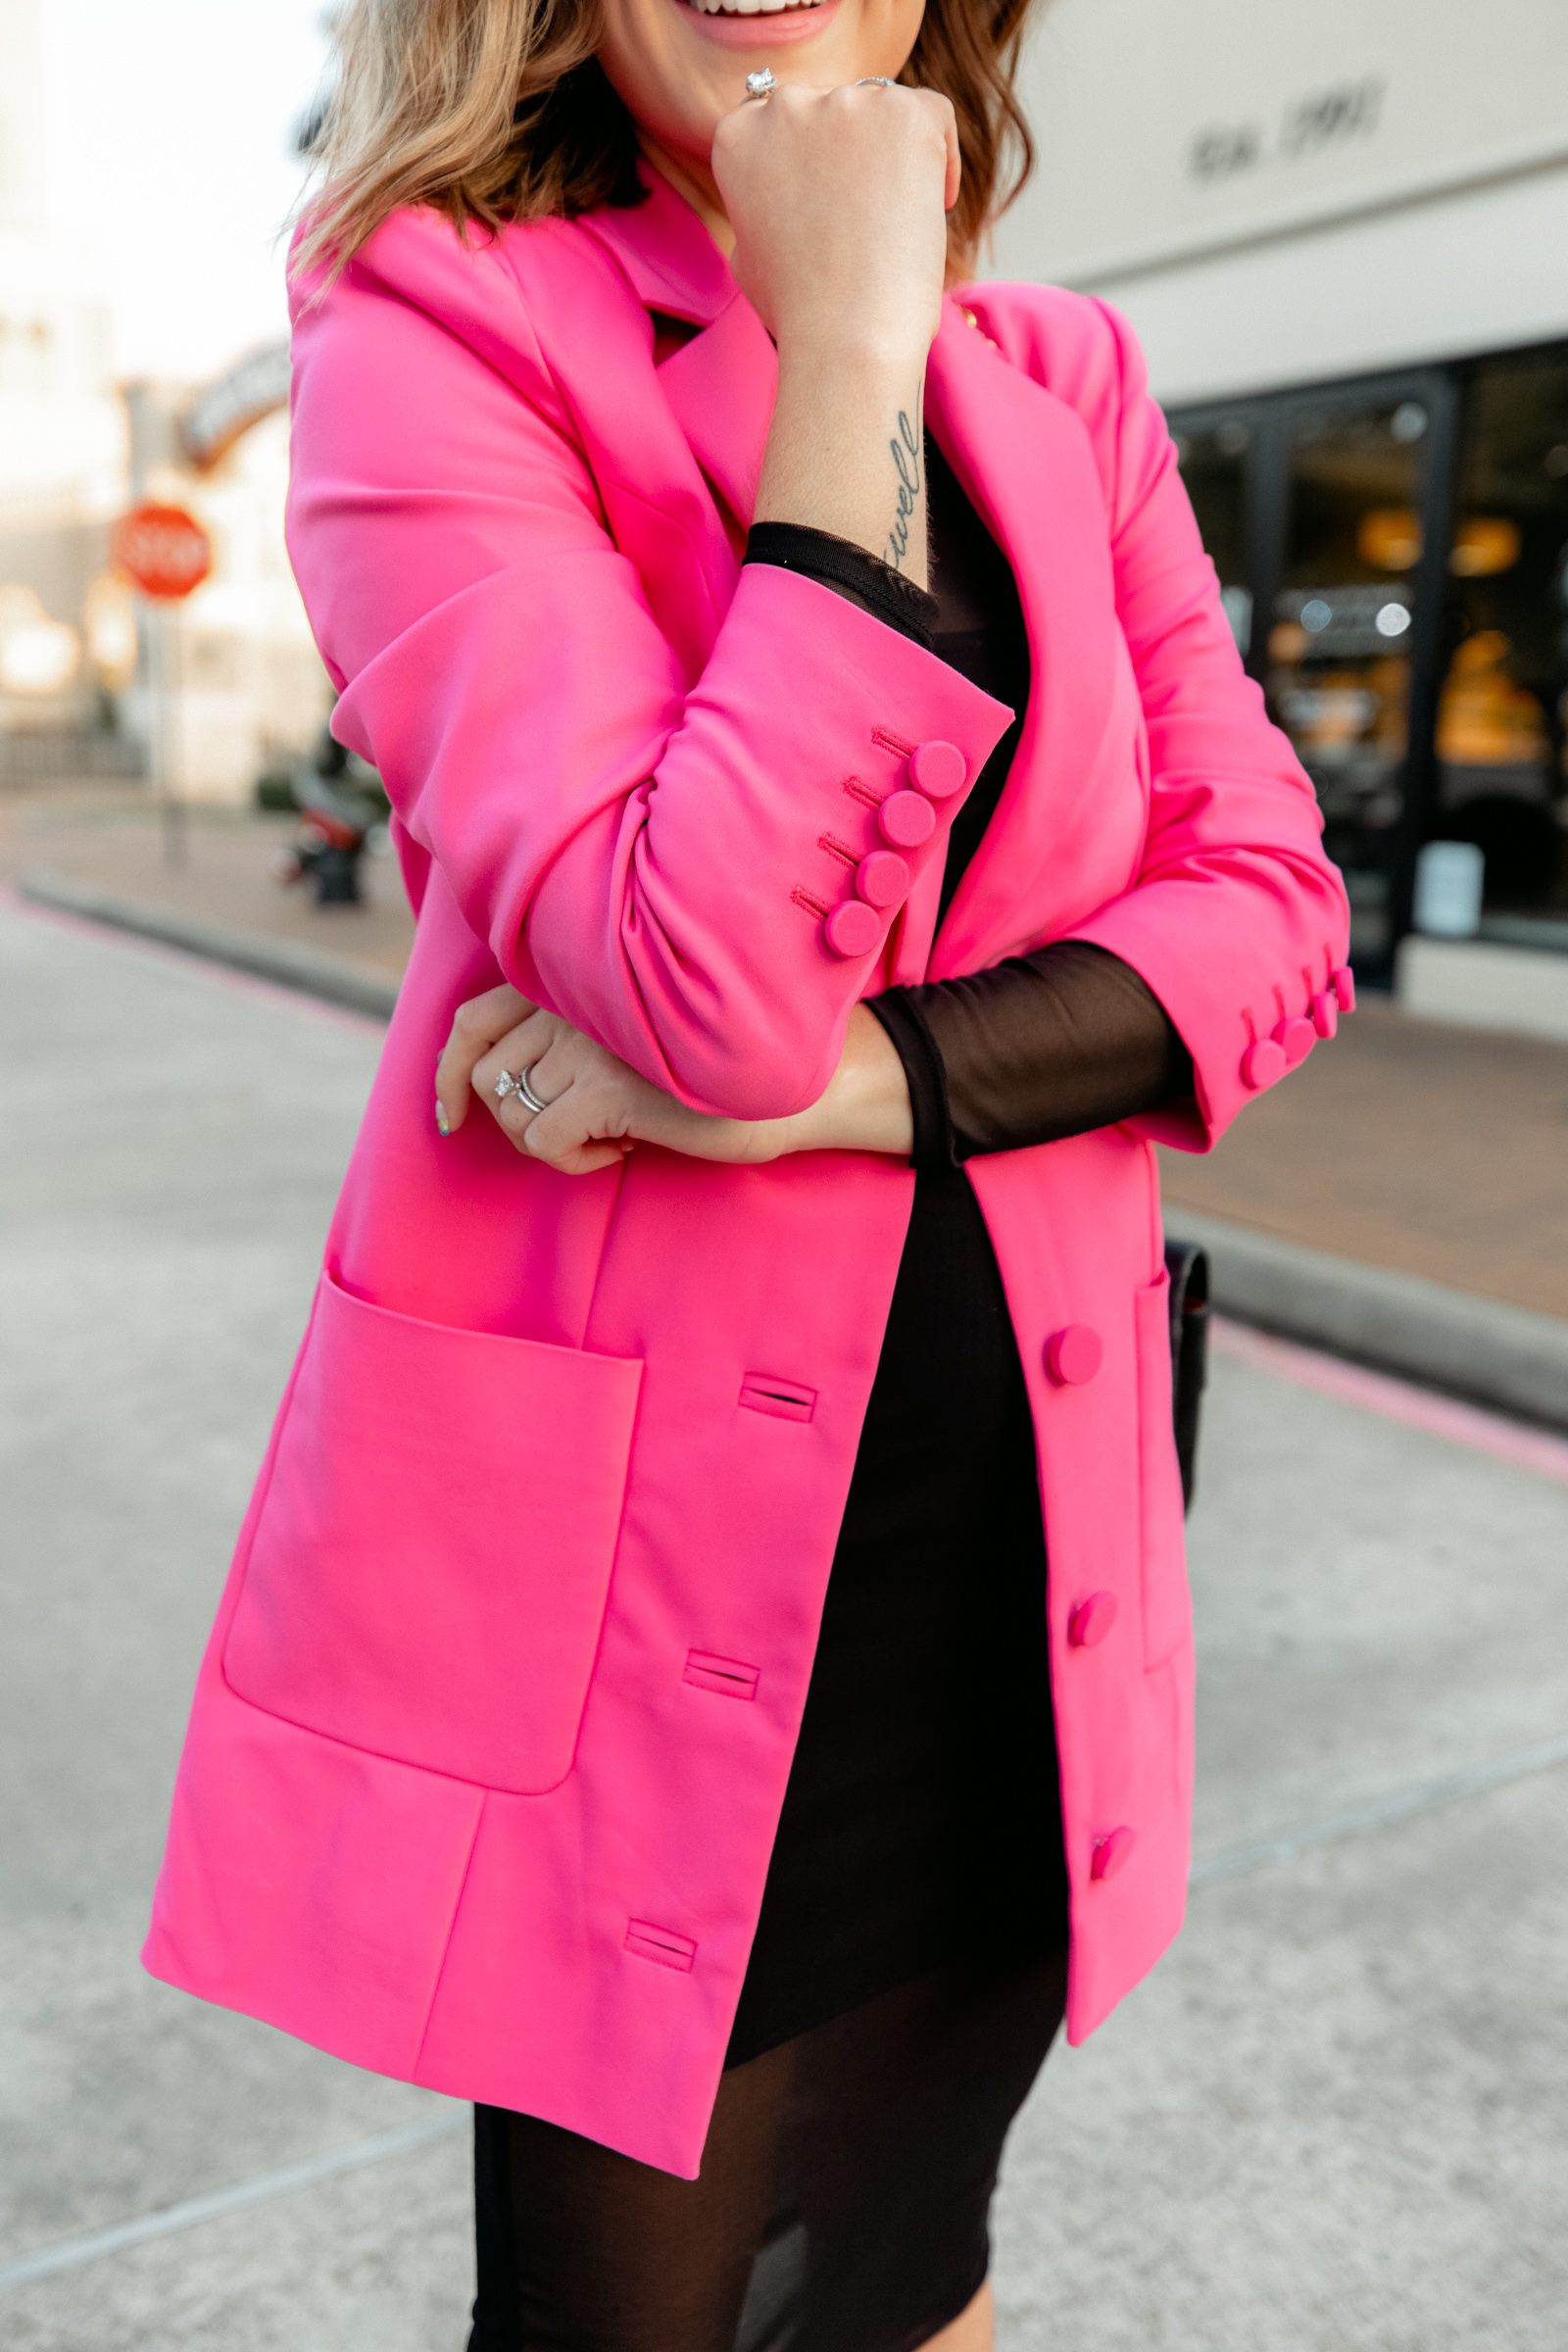 Houston fashion blogger Elly Brown wears an oversized pink blazer paired with a black dress